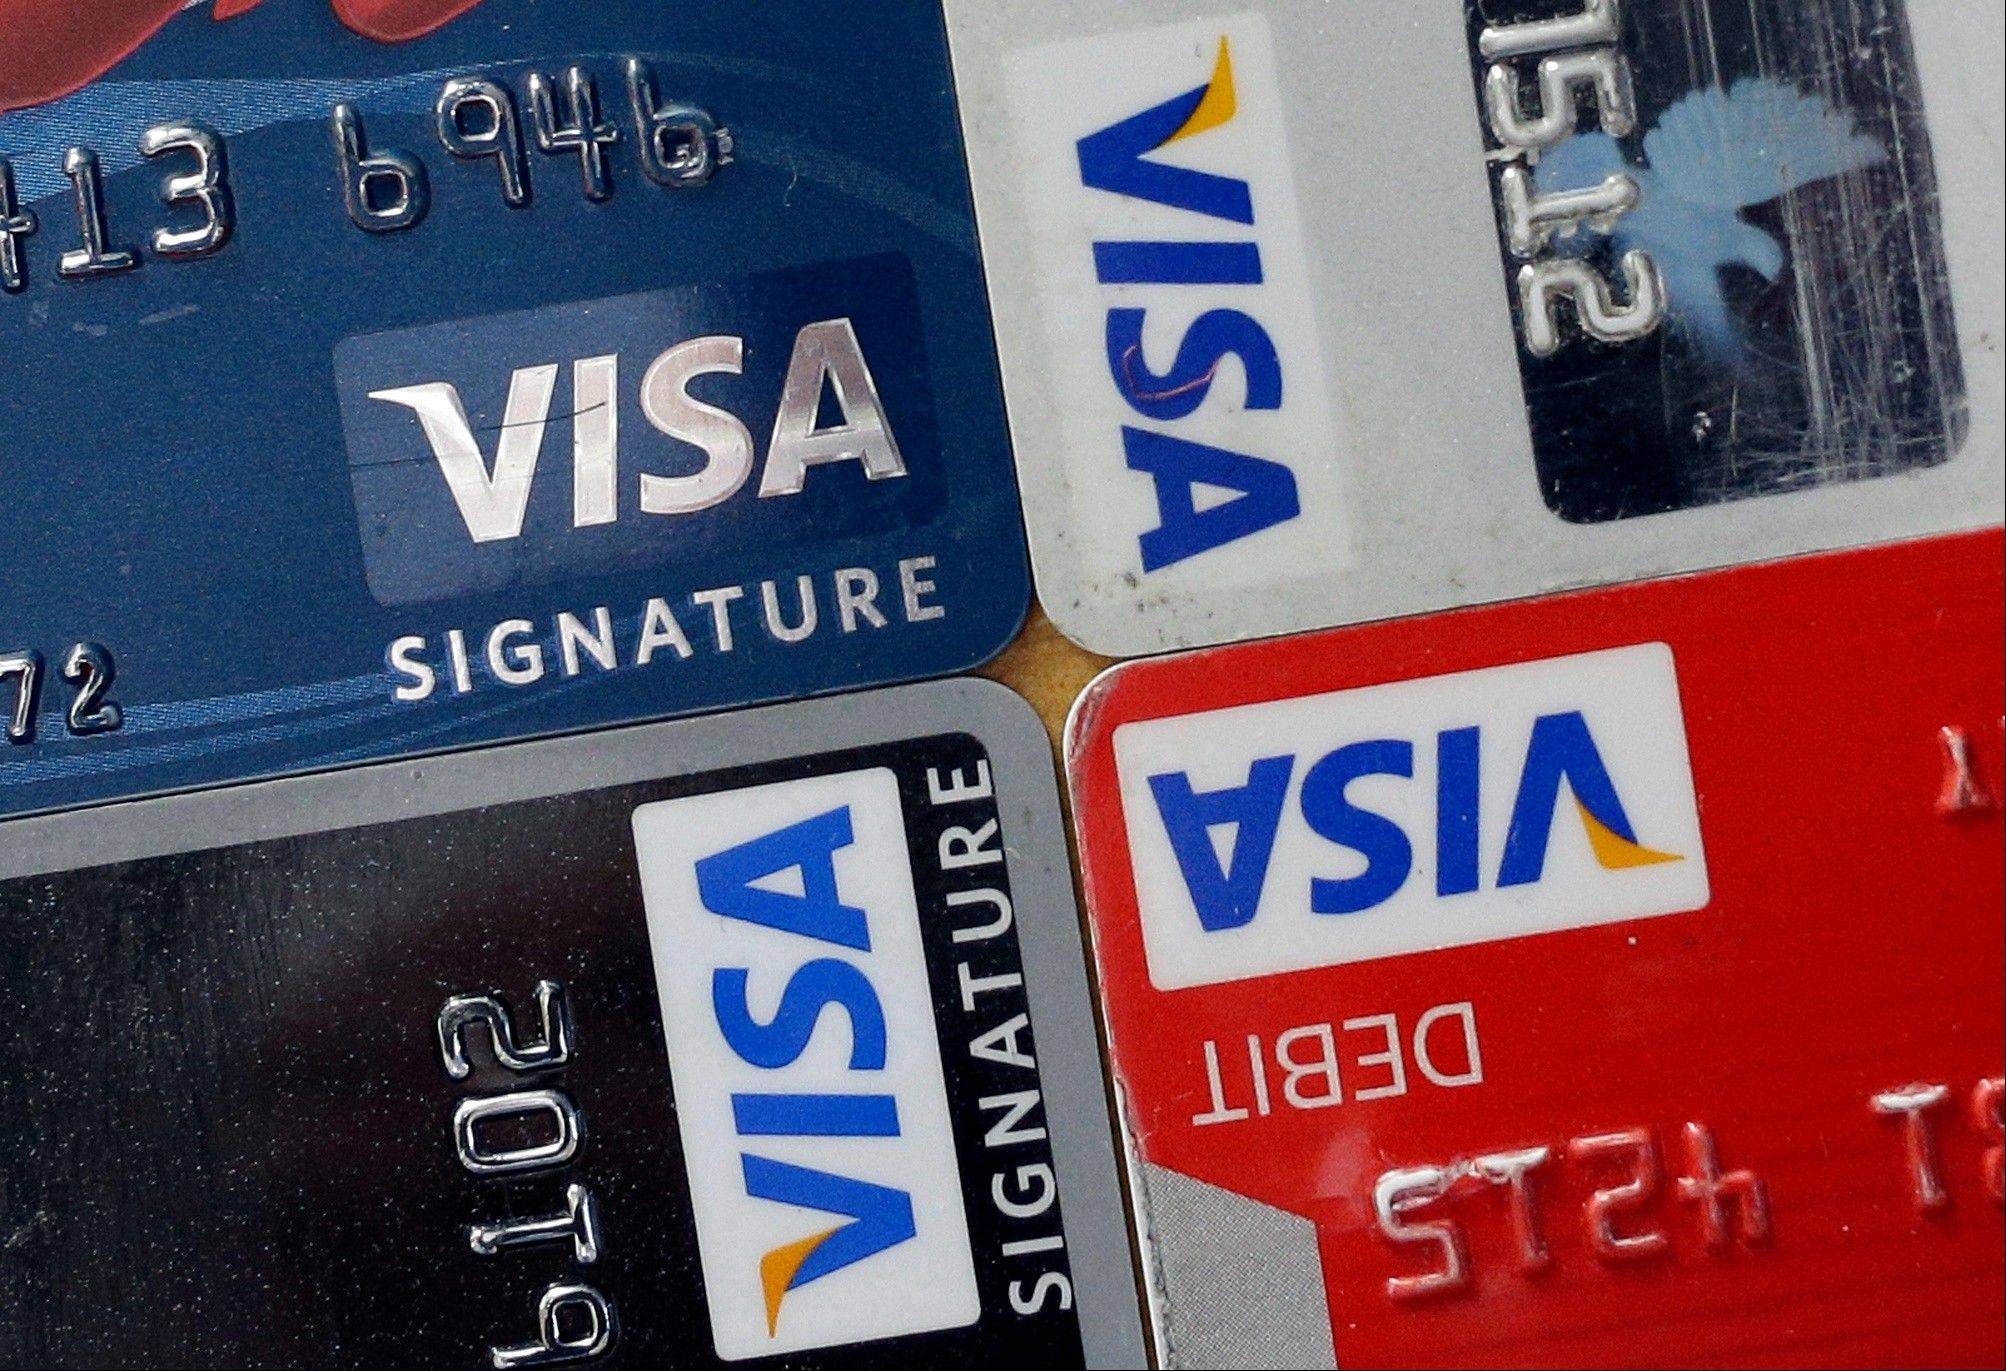 Visa�s total operating revenue climbed 15 percent to $2.96 billion, surpassing the $2.85 billion estimate of analysts surveyed by Bloomberg.